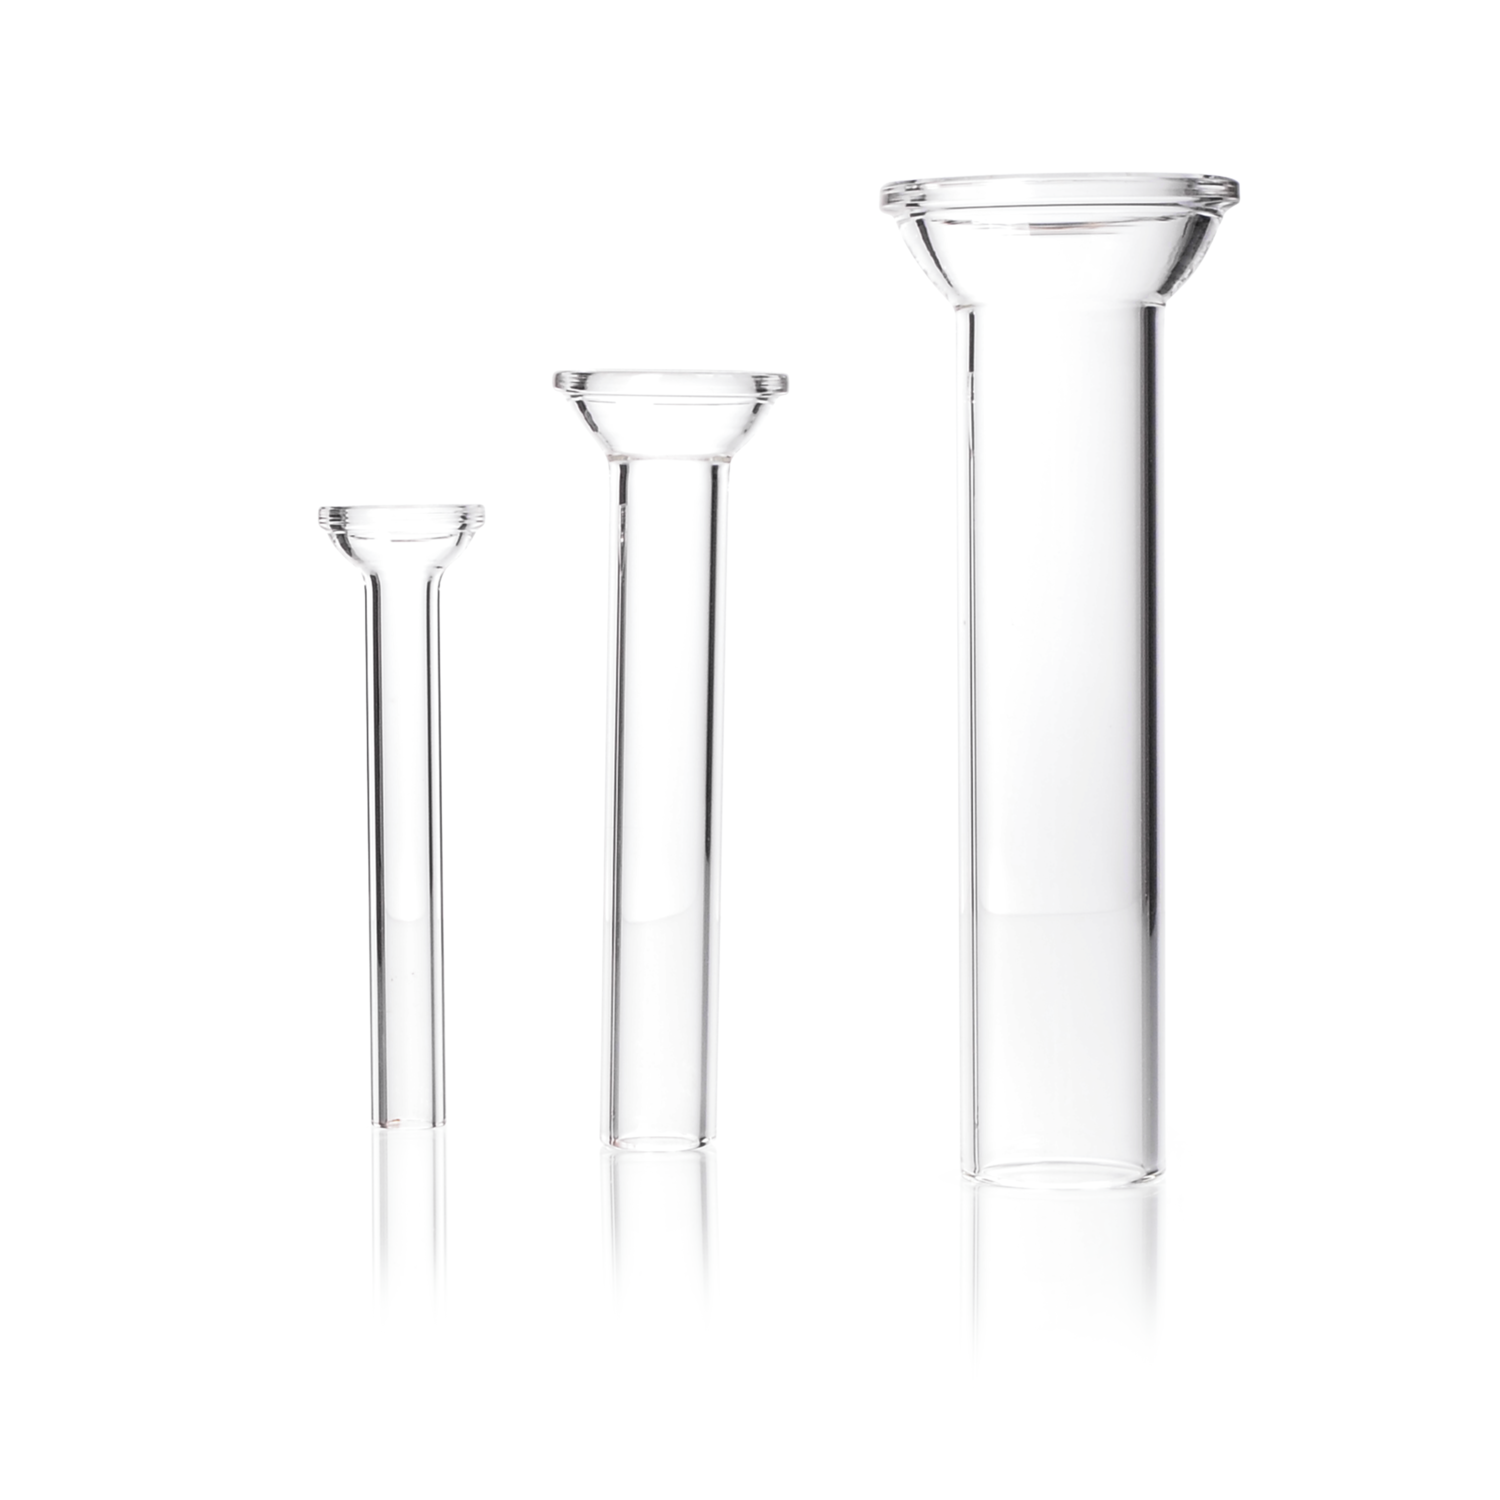 DURAN® Spherical Joint, cup, polished, S 64/40